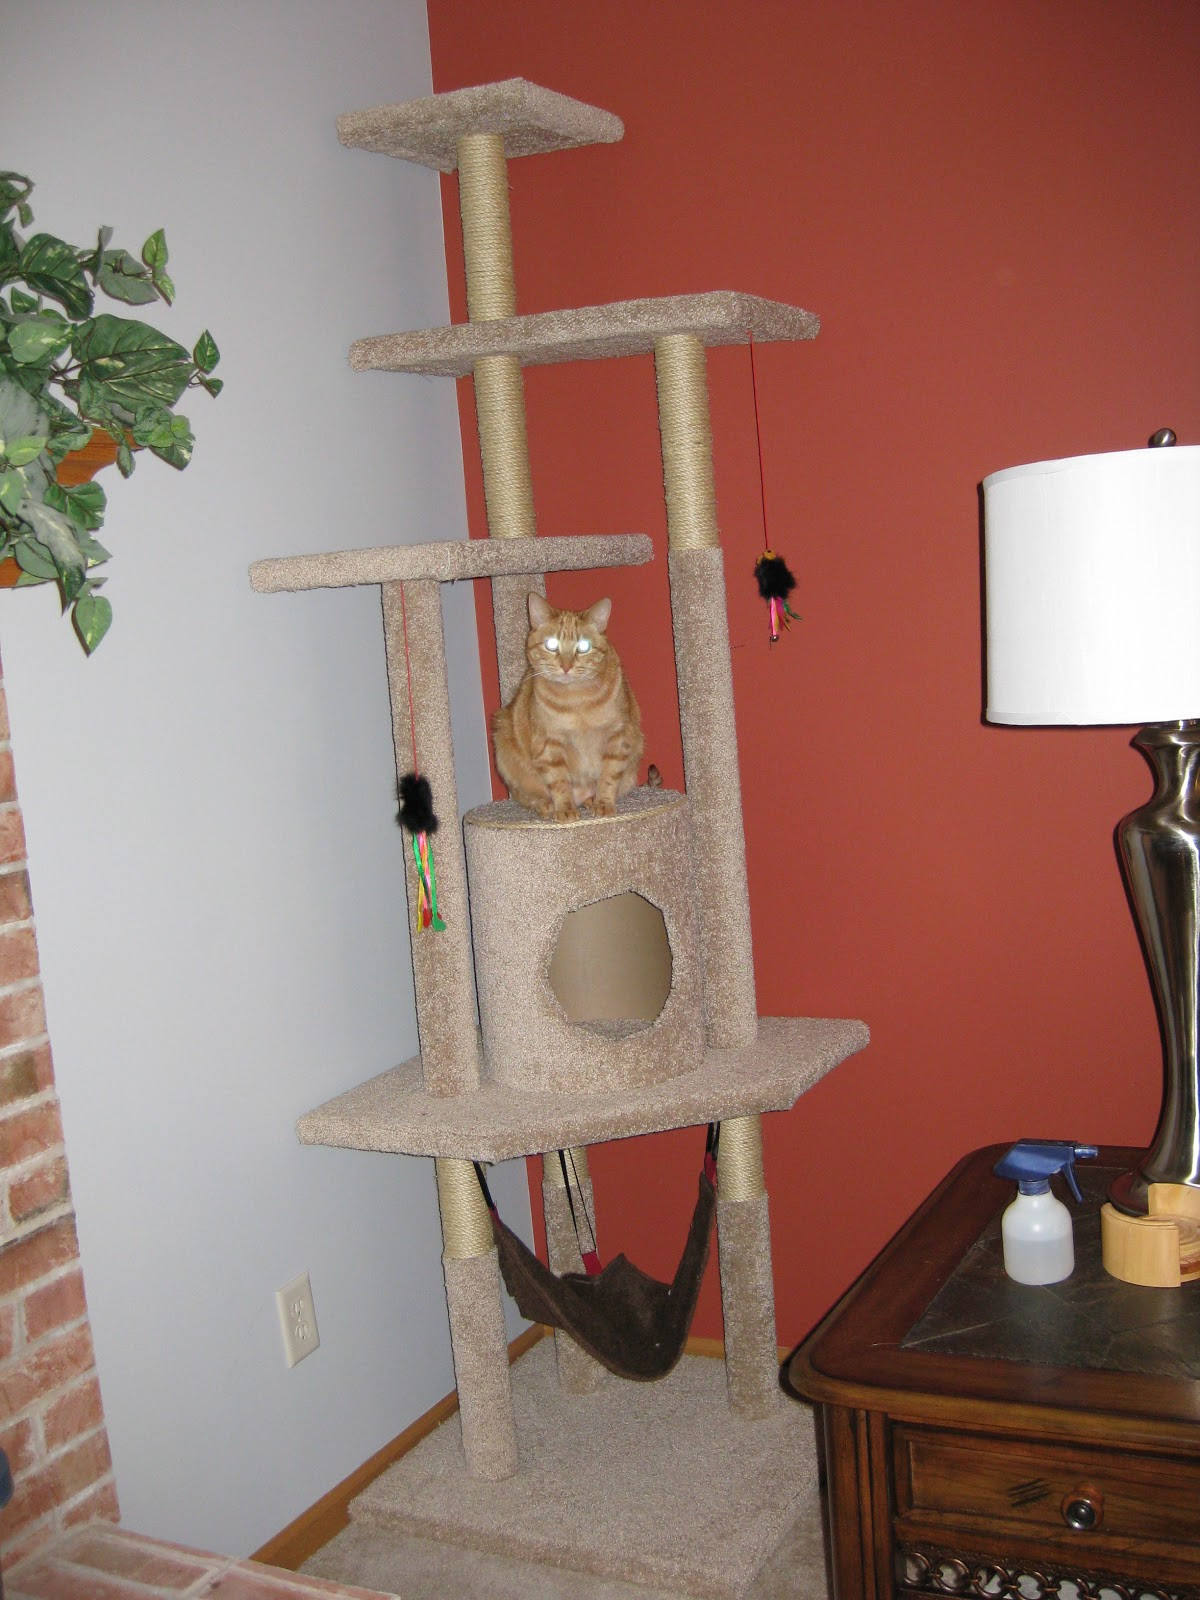 Best ideas about Cat Tree Plans DIY . Save or Pin Pickle Perfect How to Build a Cat Tree Now.